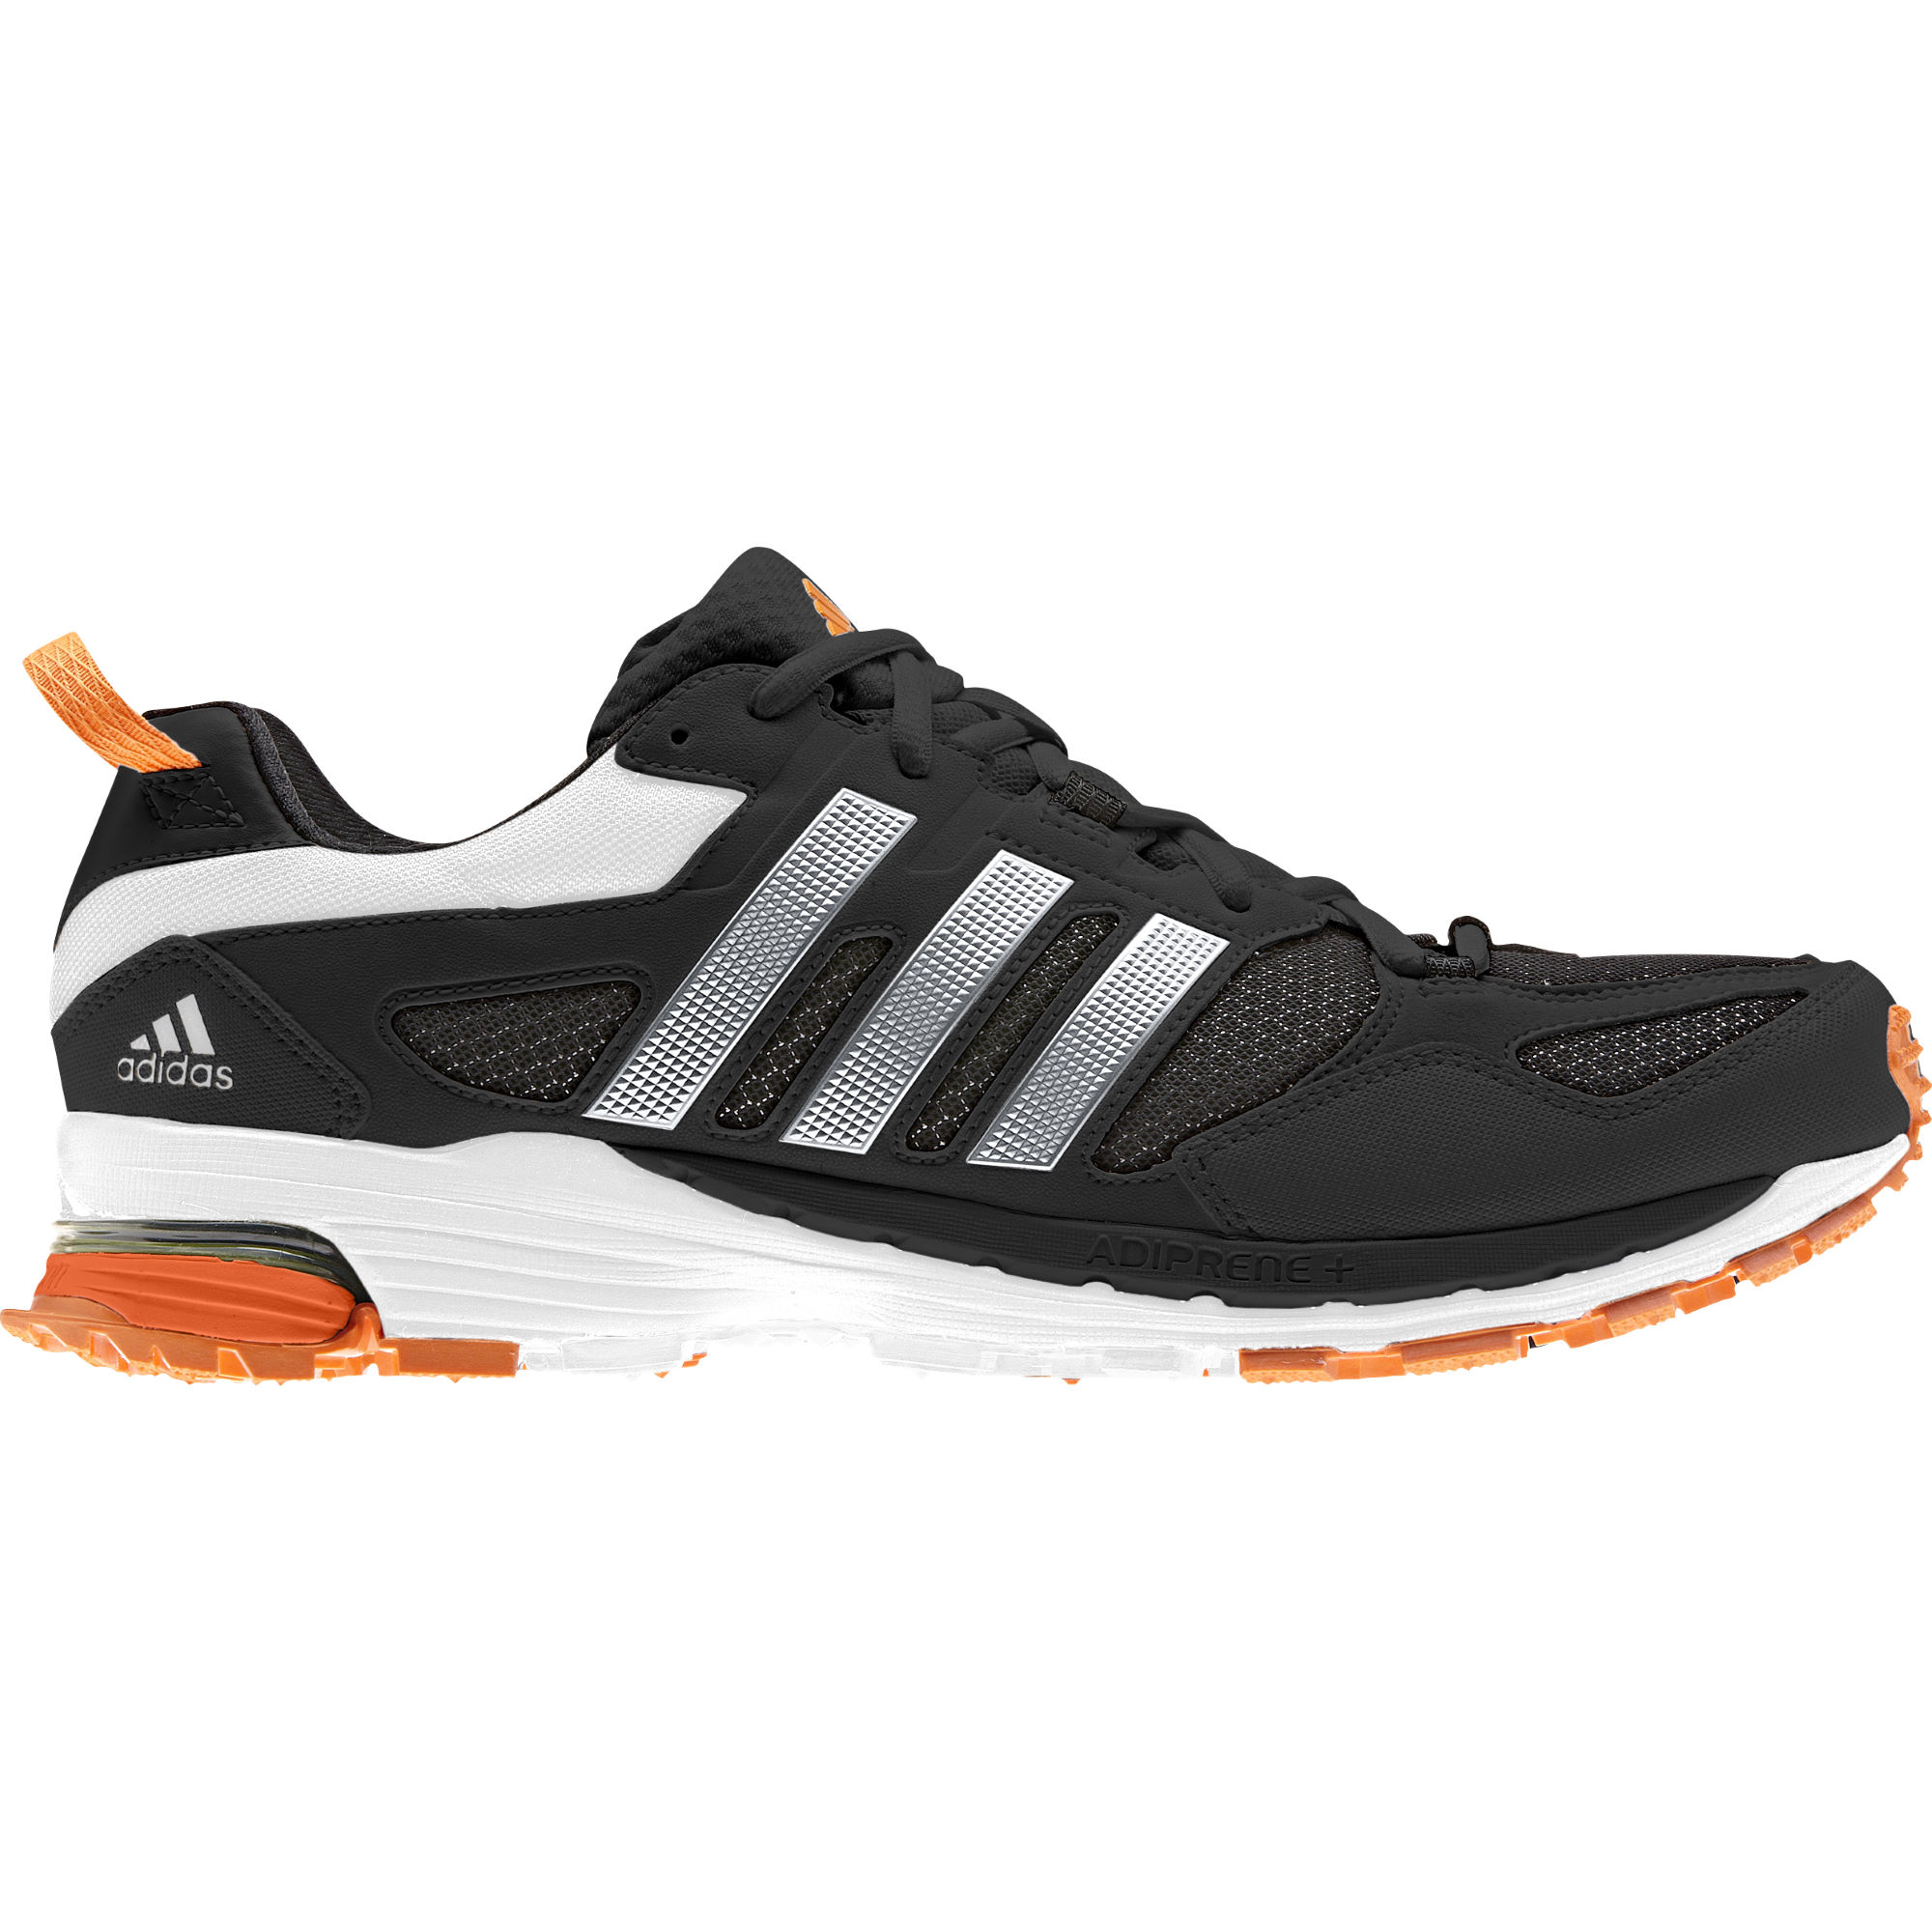 chaussures de running trail adidas supernova riot 5 trail shoes ss14 wiggle france. Black Bedroom Furniture Sets. Home Design Ideas